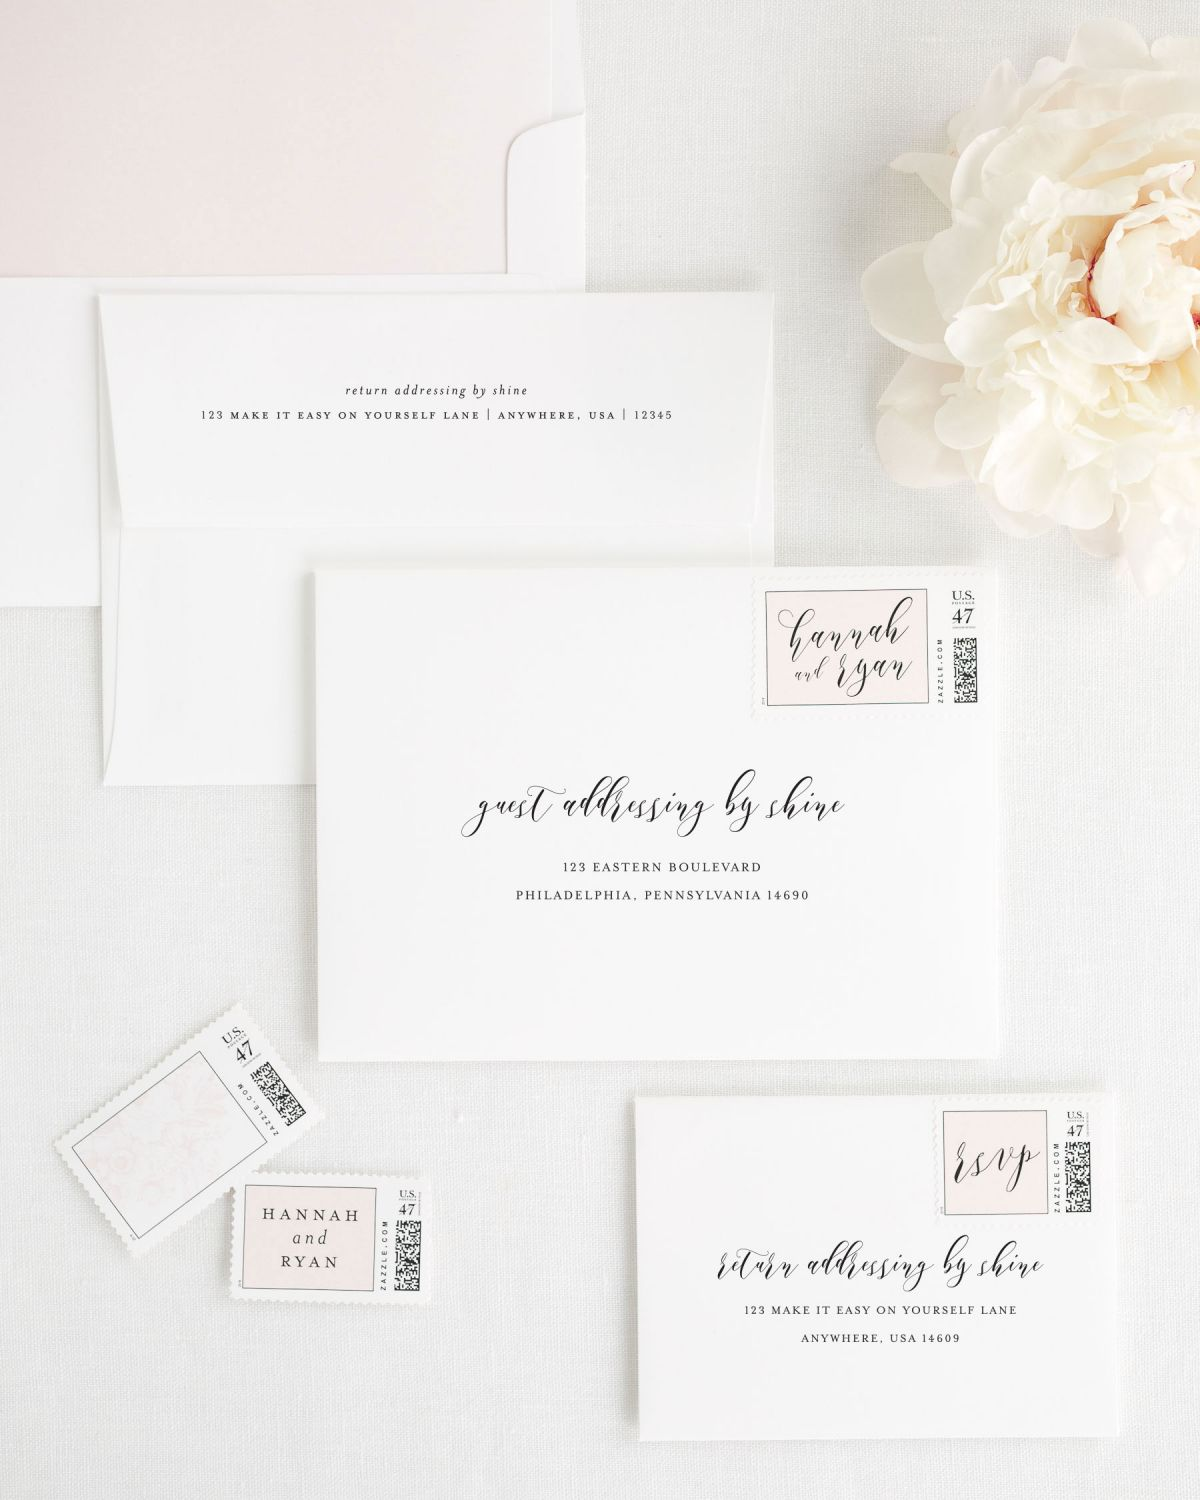 Everly Wedding Invitations - Wedding Invitations by Shine